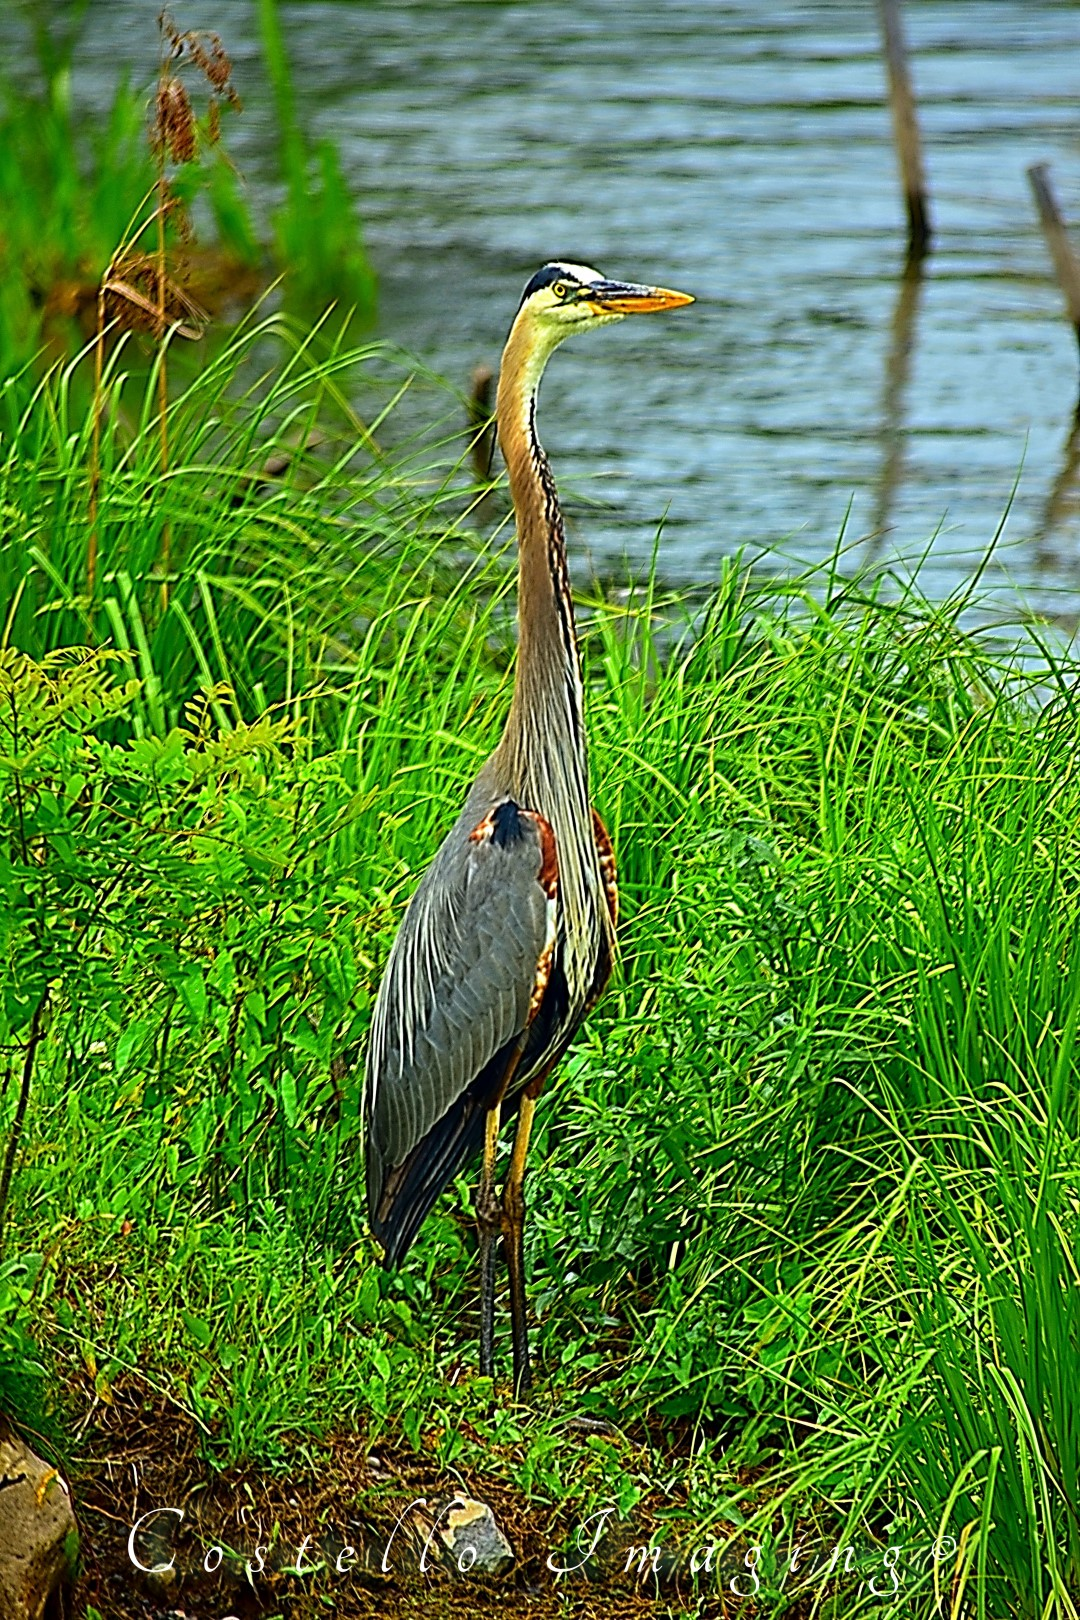 Blue Heron on standby (photo)